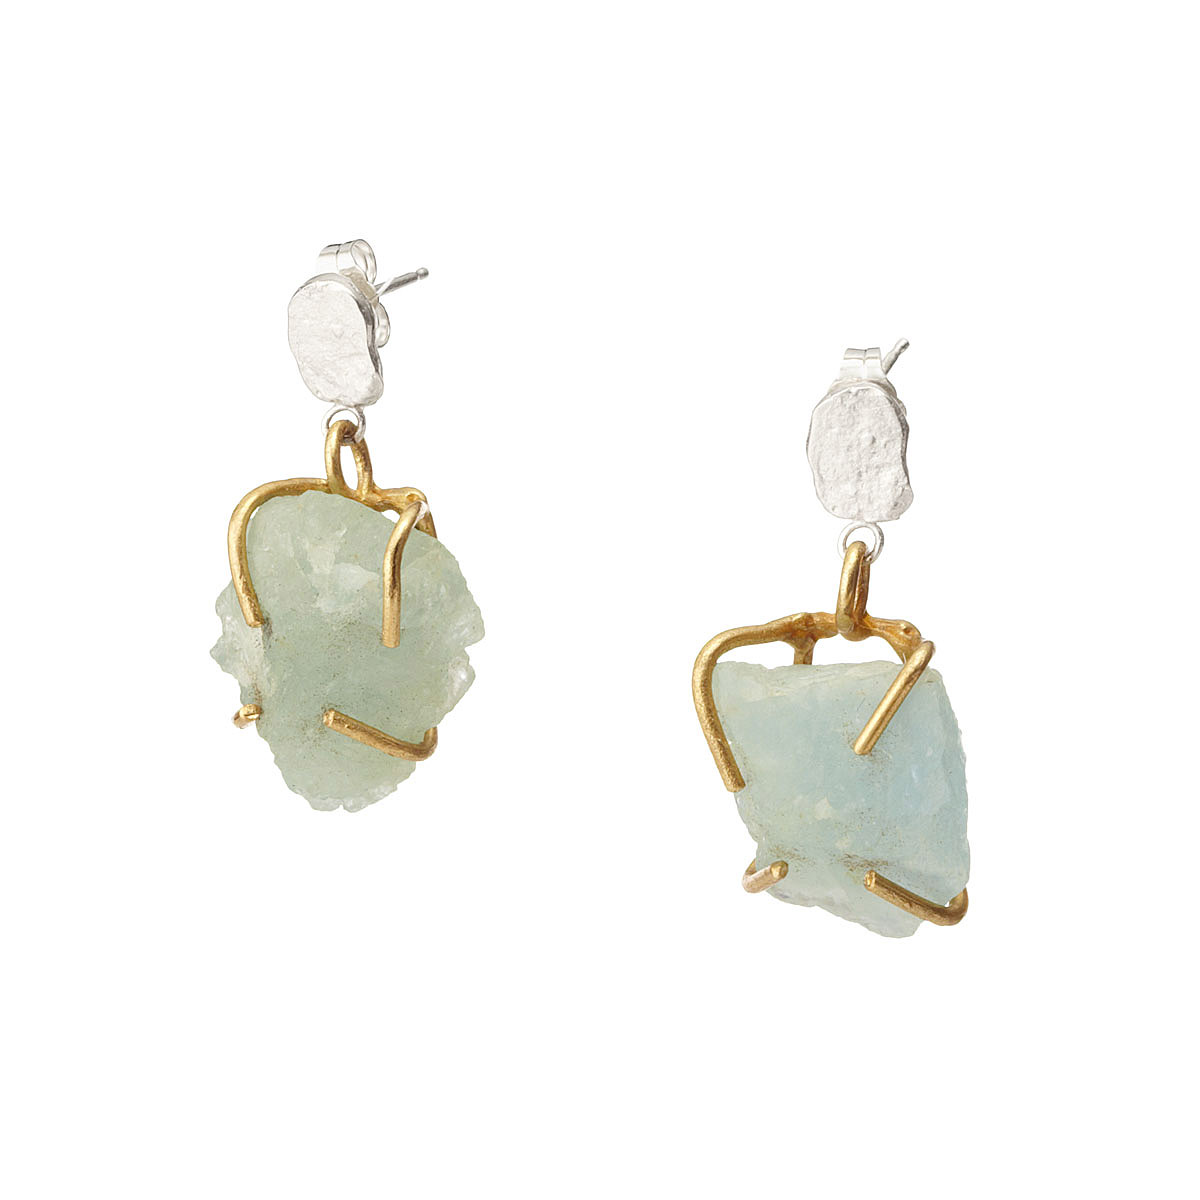 Gemstone earrings – Be aware people are watching you